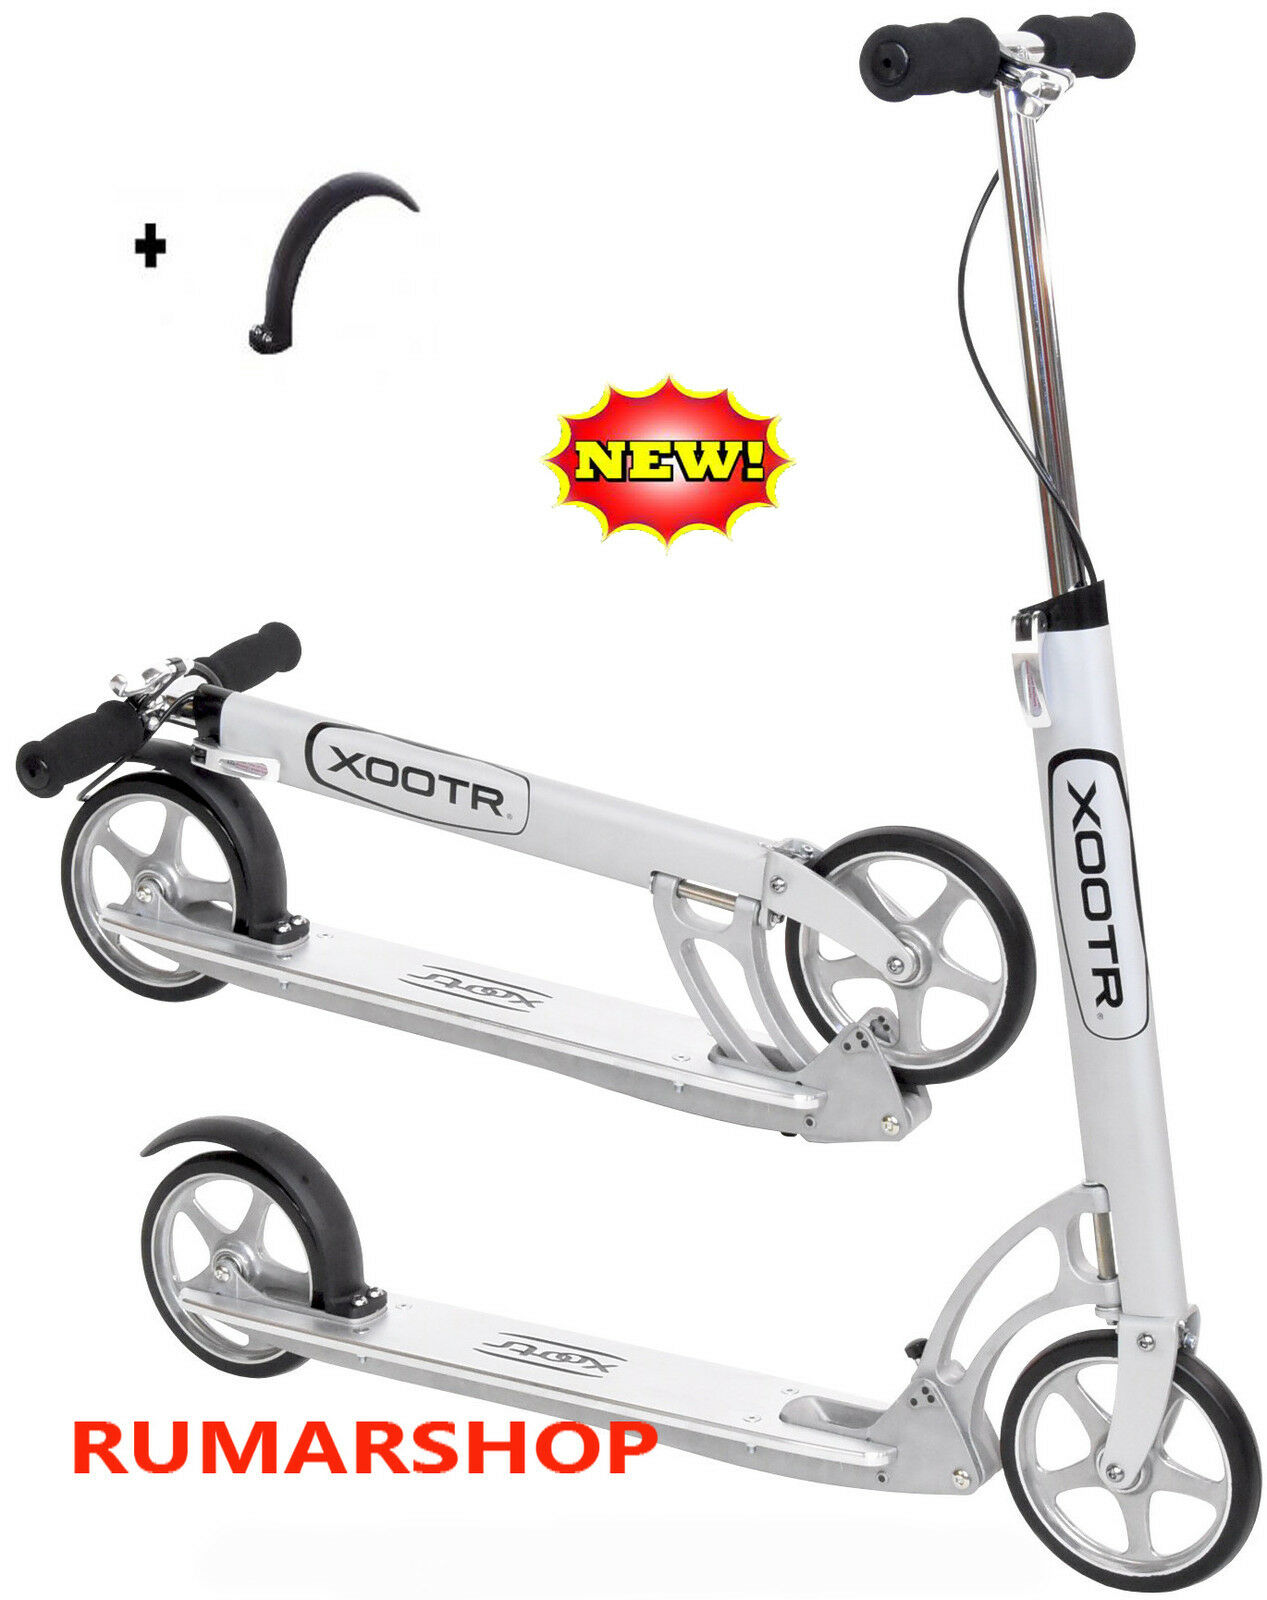 TOP PRODUCT NIEUW ORIGINELE XOOTR SCOOTER STEP AUTOPED MODEL ROMA + FENDER